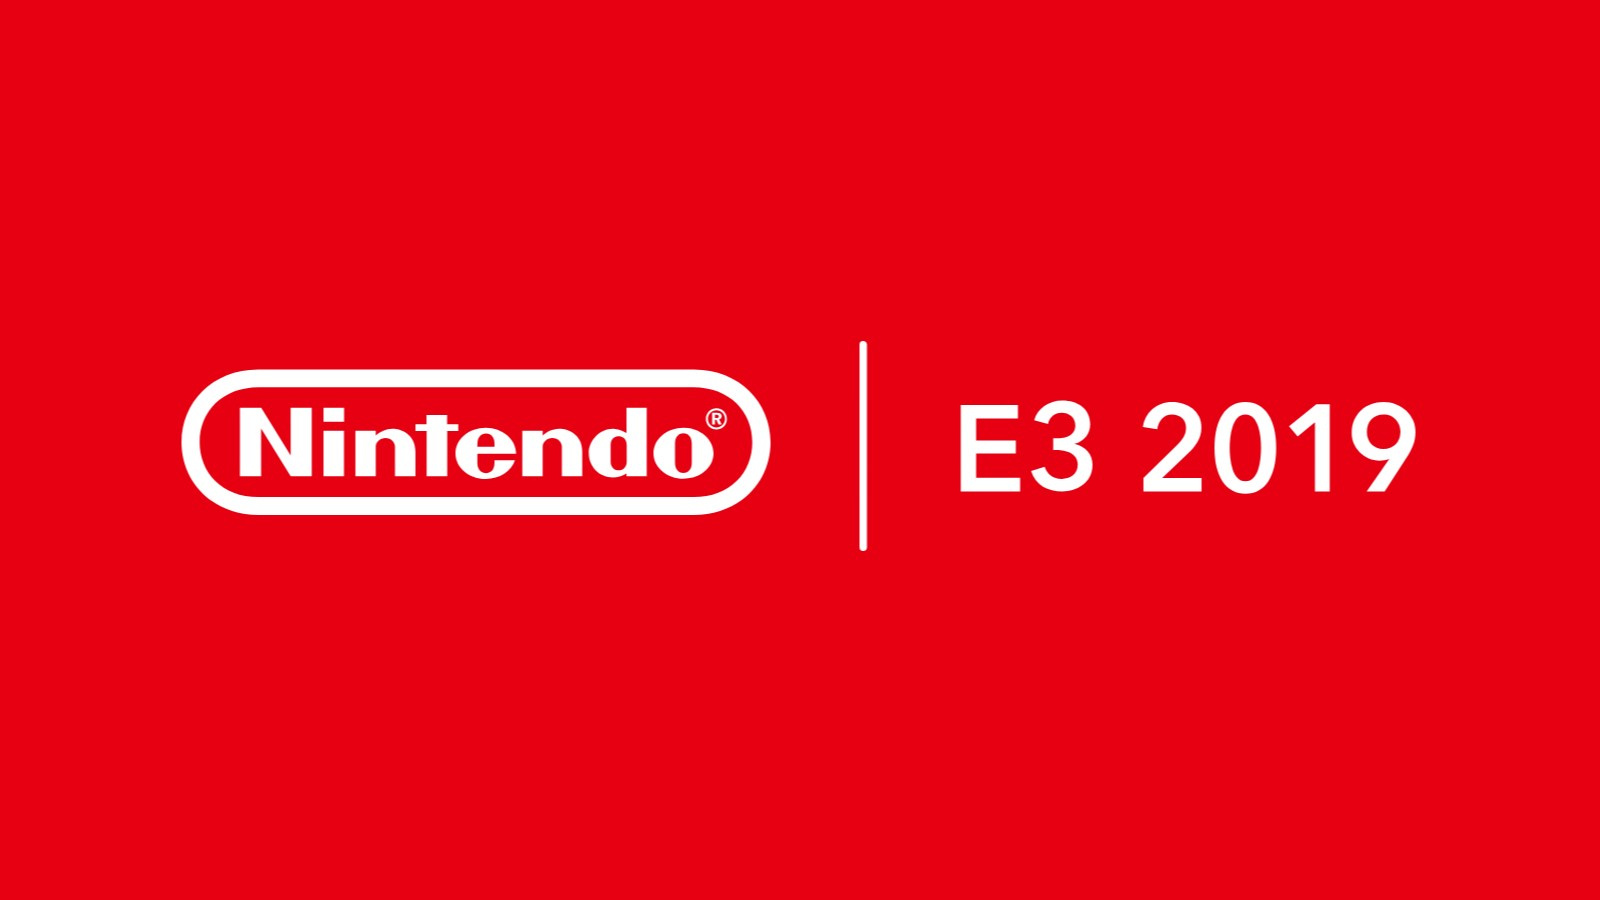 E3 2019 Nintendo Direct Times And Event Schedule - Guide - Nintendo Life